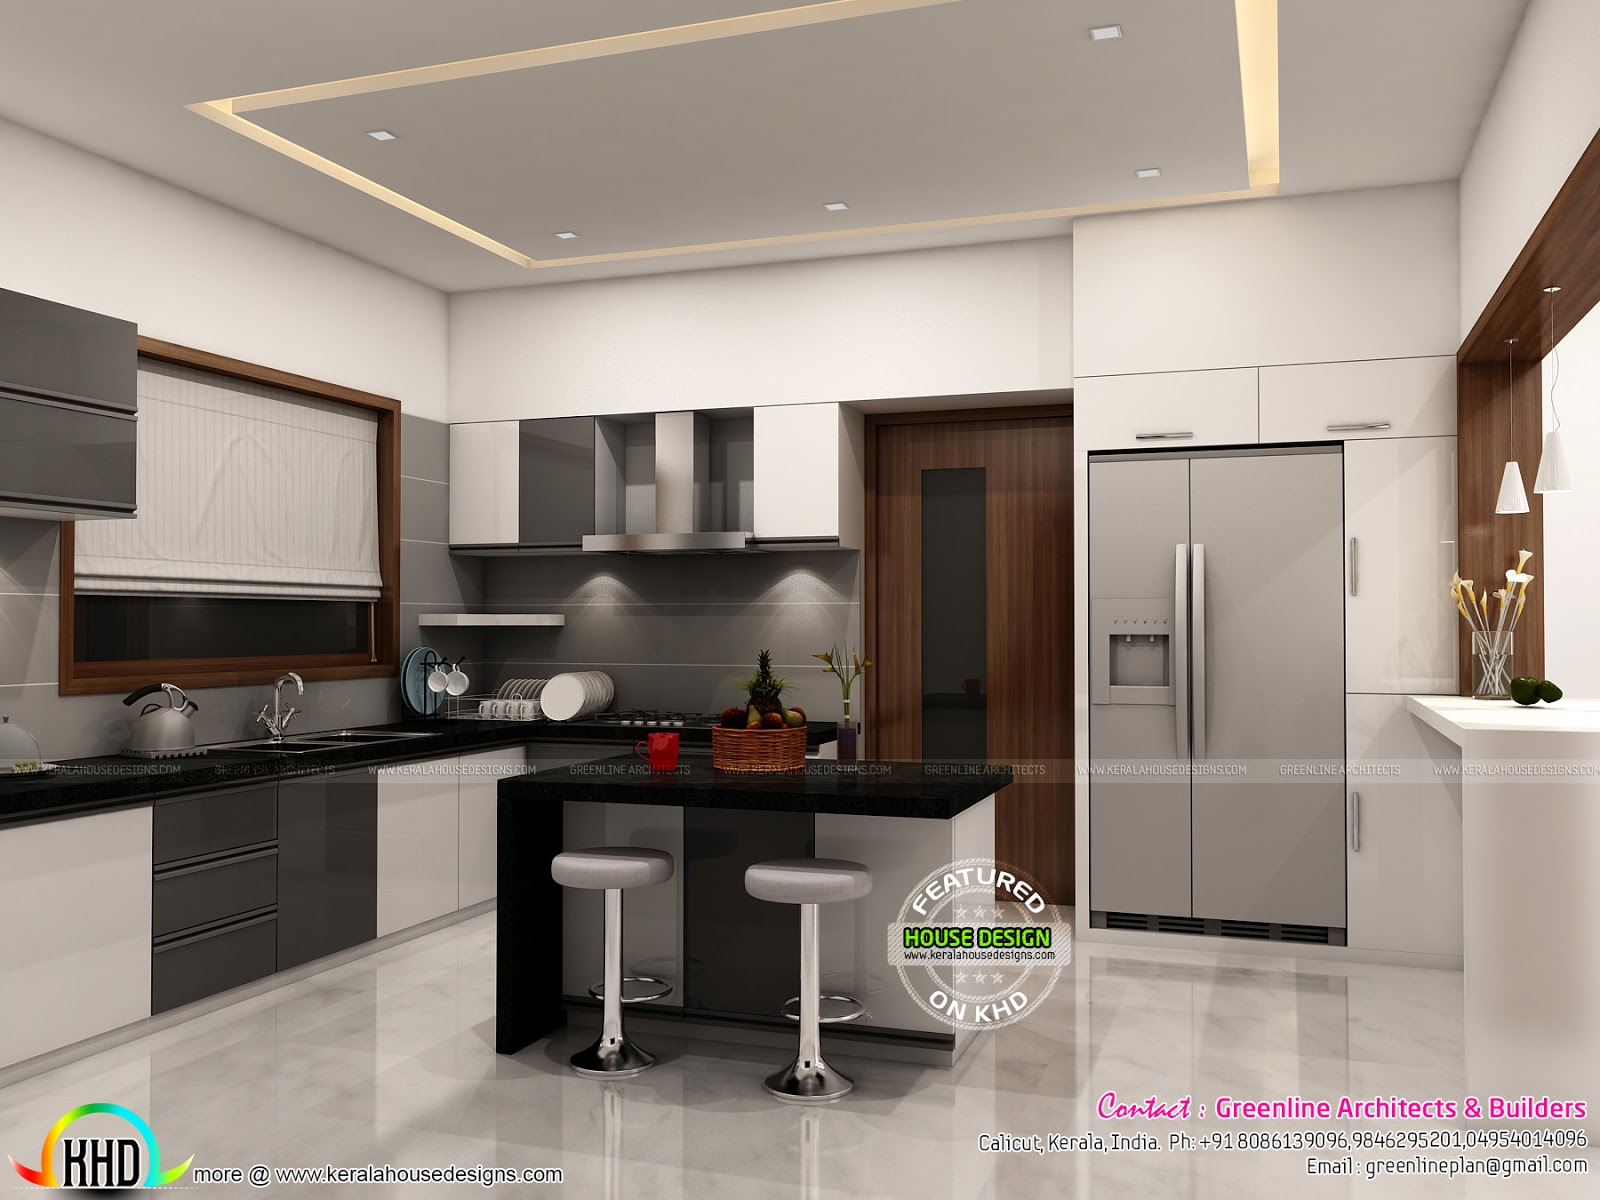 For More Details Of This Home Contact Design In Calicut Kozhikode